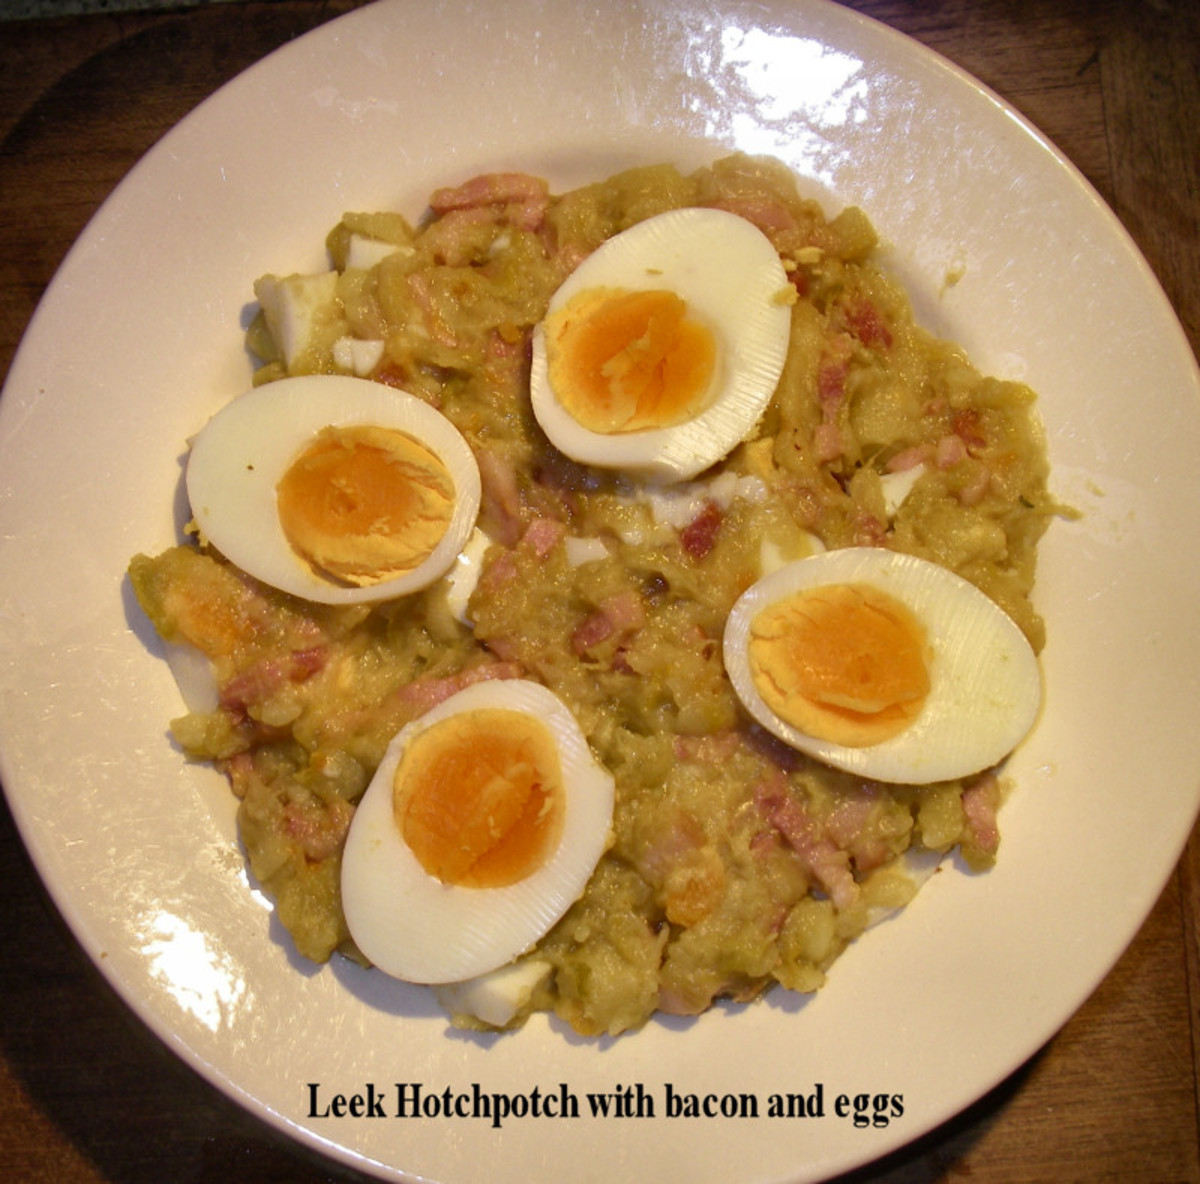 Leek Hotchpotch With Bacon and Eggs: A Traditional Dutch Recipe